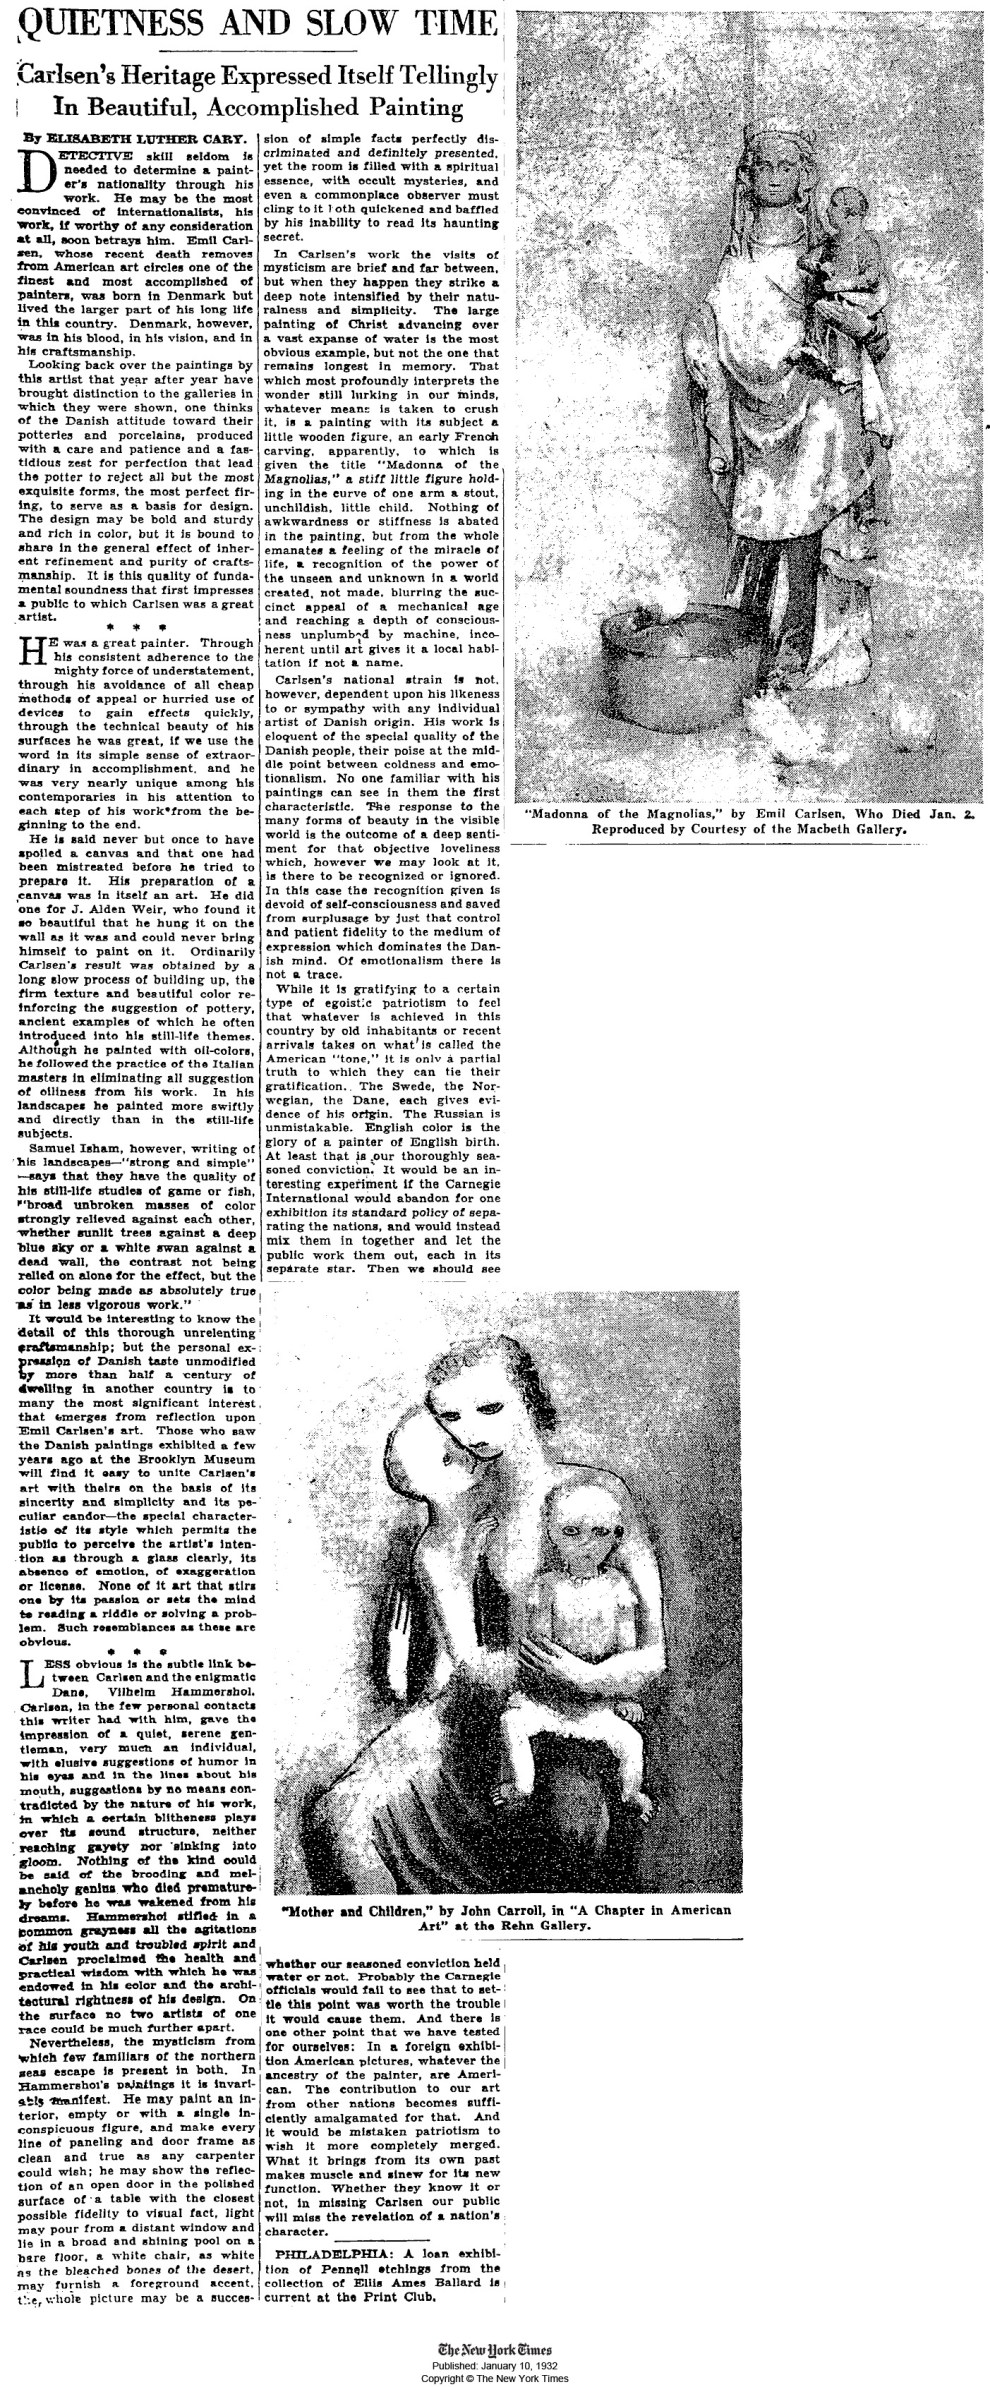 "1932 The New York Times, New York, NY, ""Quietness and Slow Time: Carlsen's Heritage Expressed Itself Tellingly In Beautiful, Accomplished Painting"" by Elisabeth Luther Cary, January 10, 1932, illustrated: B&W"